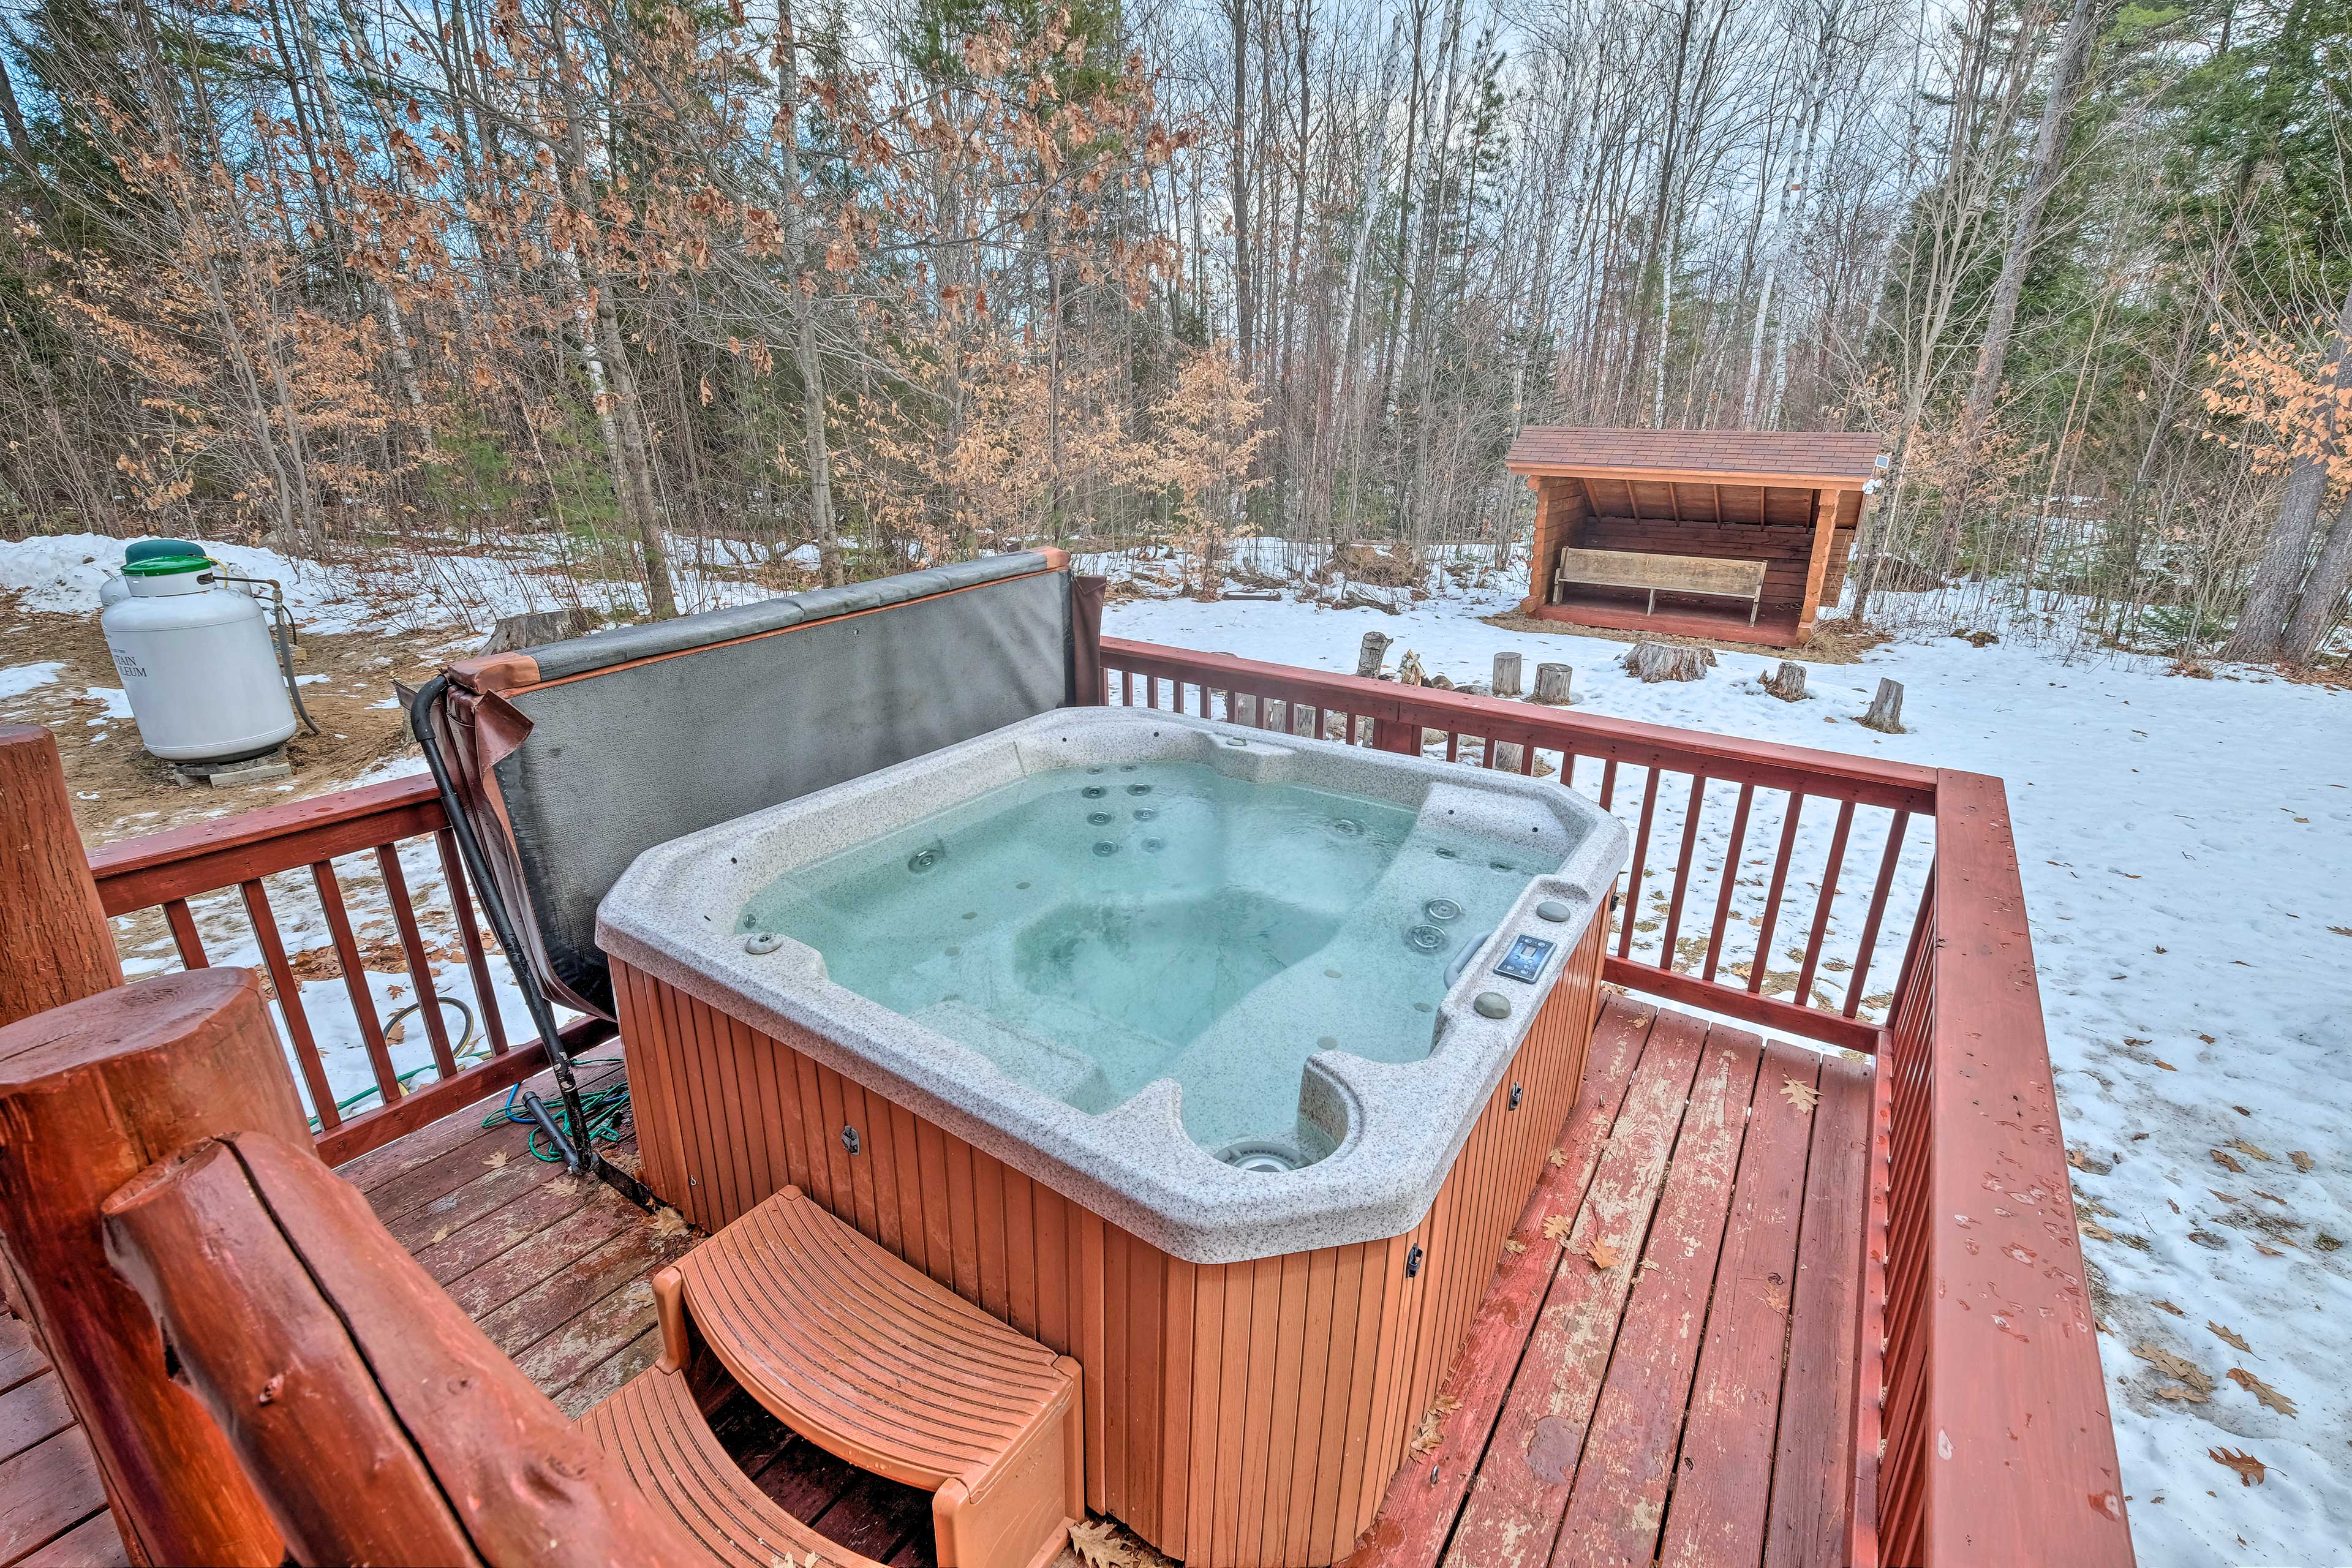 Let your worries all melt away in the hot tub.